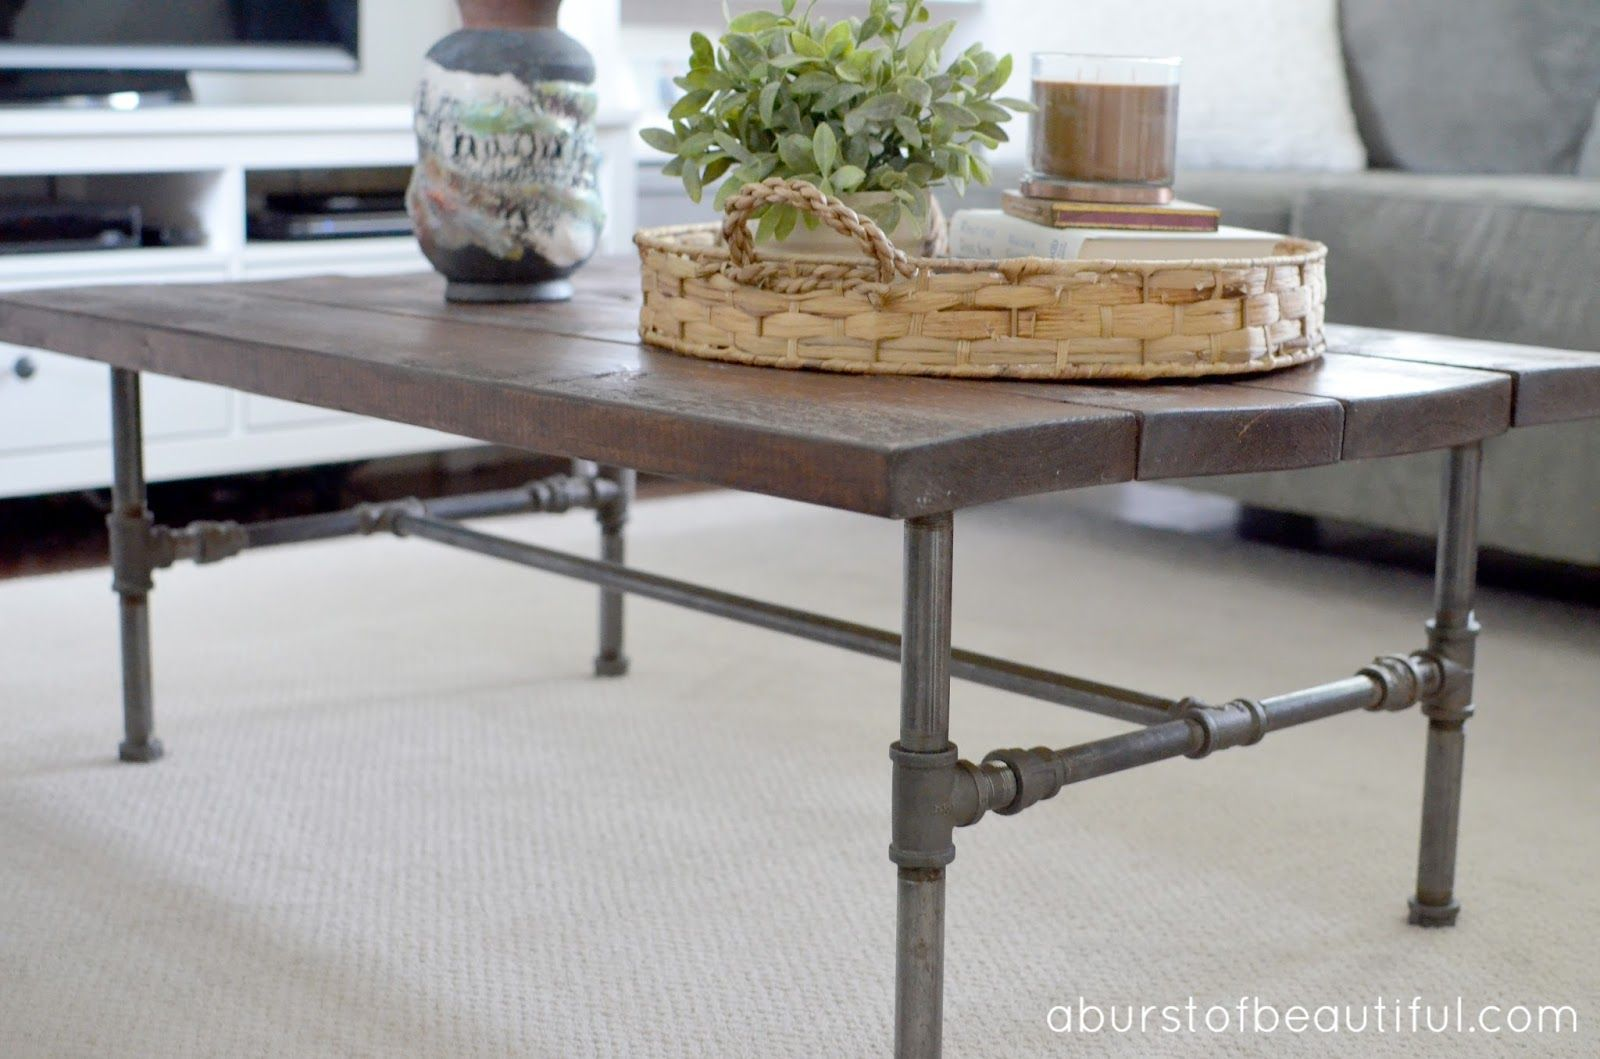 A Burst Of Beautiful: DIY Rustic Industrial Pipe Coffee Table